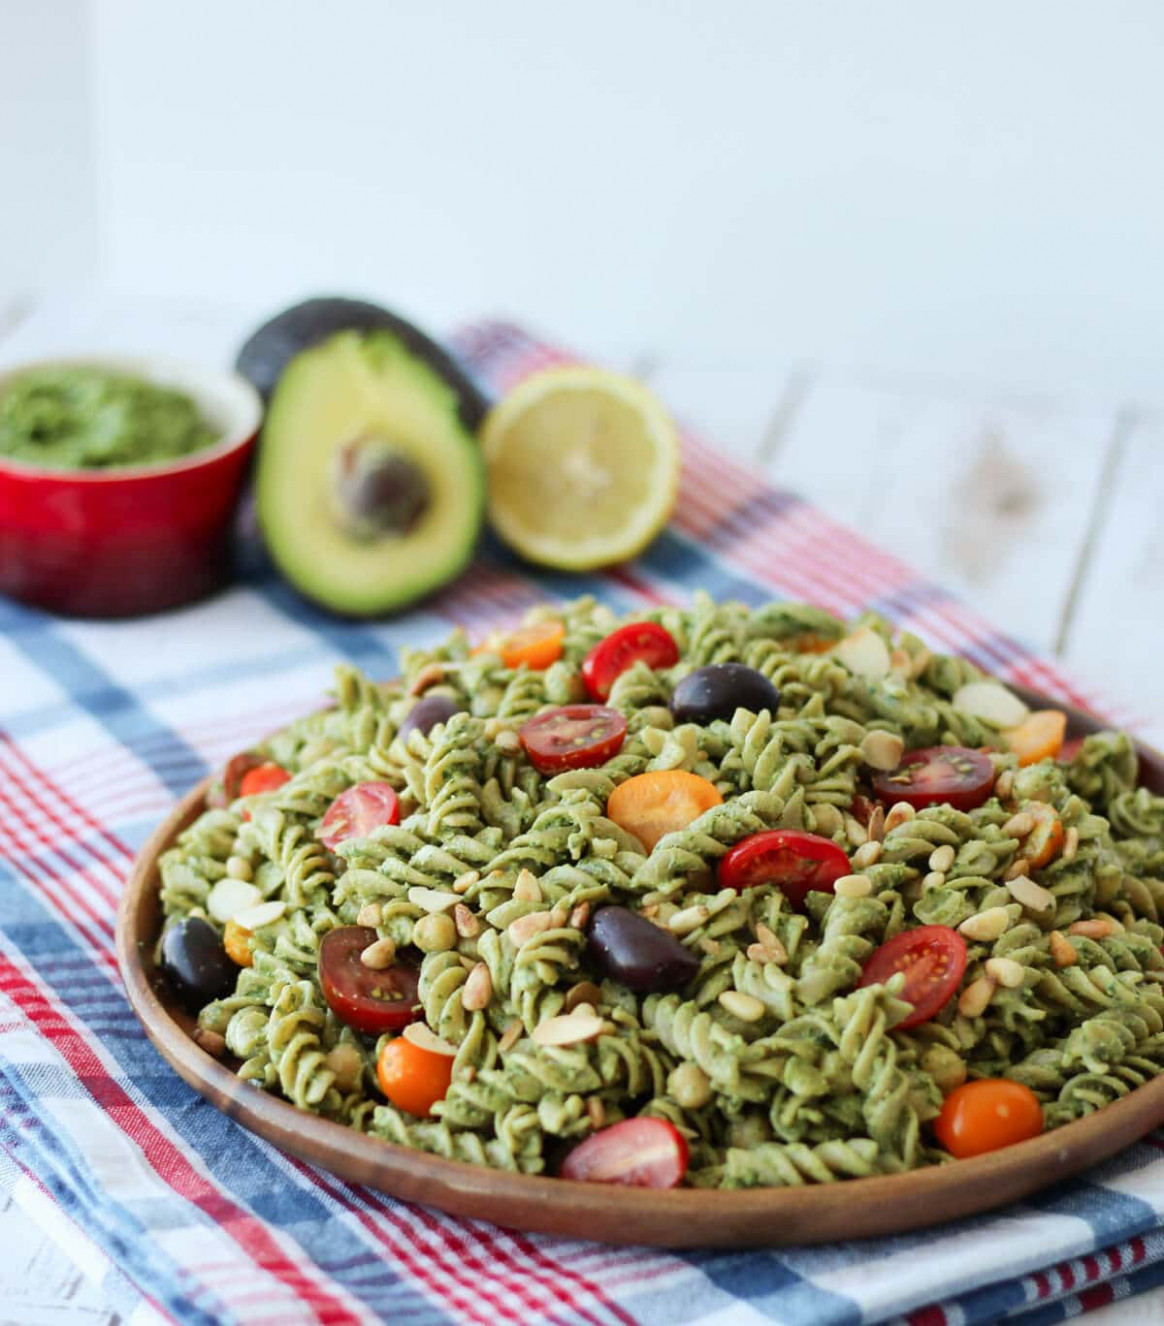 Vegan Pesto Gluten Free Pasta Salad | Healthy Summer Potluck Recipe - Recipes Vegetarian And Gluten Free